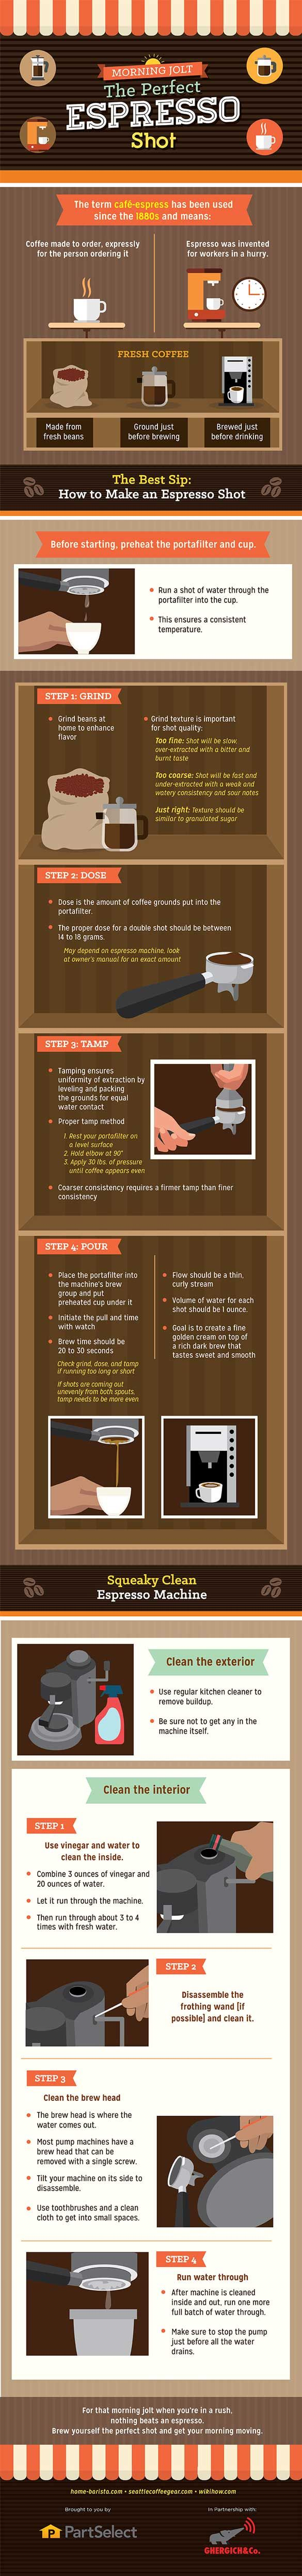 Ever wanted to make perfect espresso yourself? We've got the scoop on how to do it right! | Fit Bottomed Eats